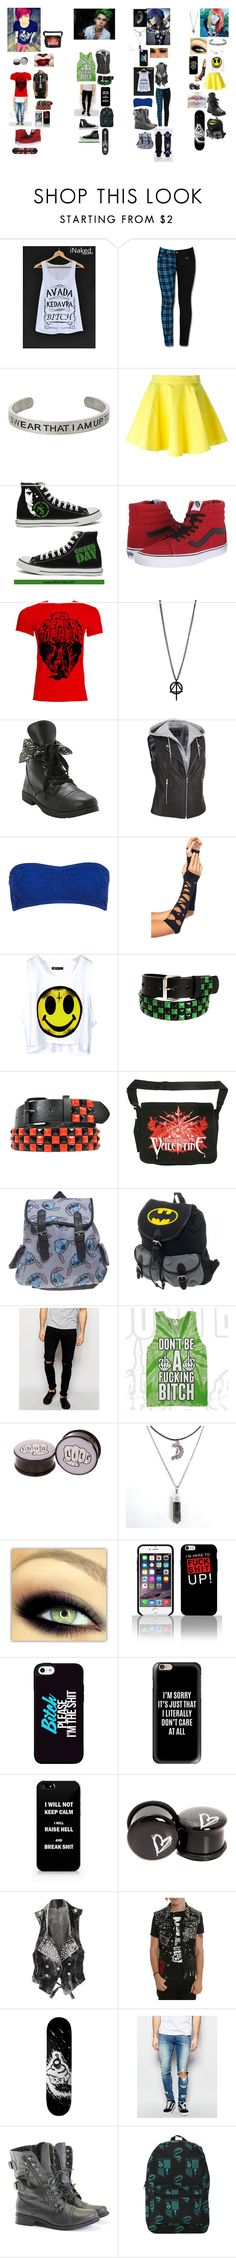 """Hogwarts Rebels"" by xxcashby-squidgyxx ❤ liked on Polyvore featuring Jeremy Scott, Converse, Vans, Forever 21, Wet Seal, Only & Sons, Casetify, Tripp, ASOS and Rocio"